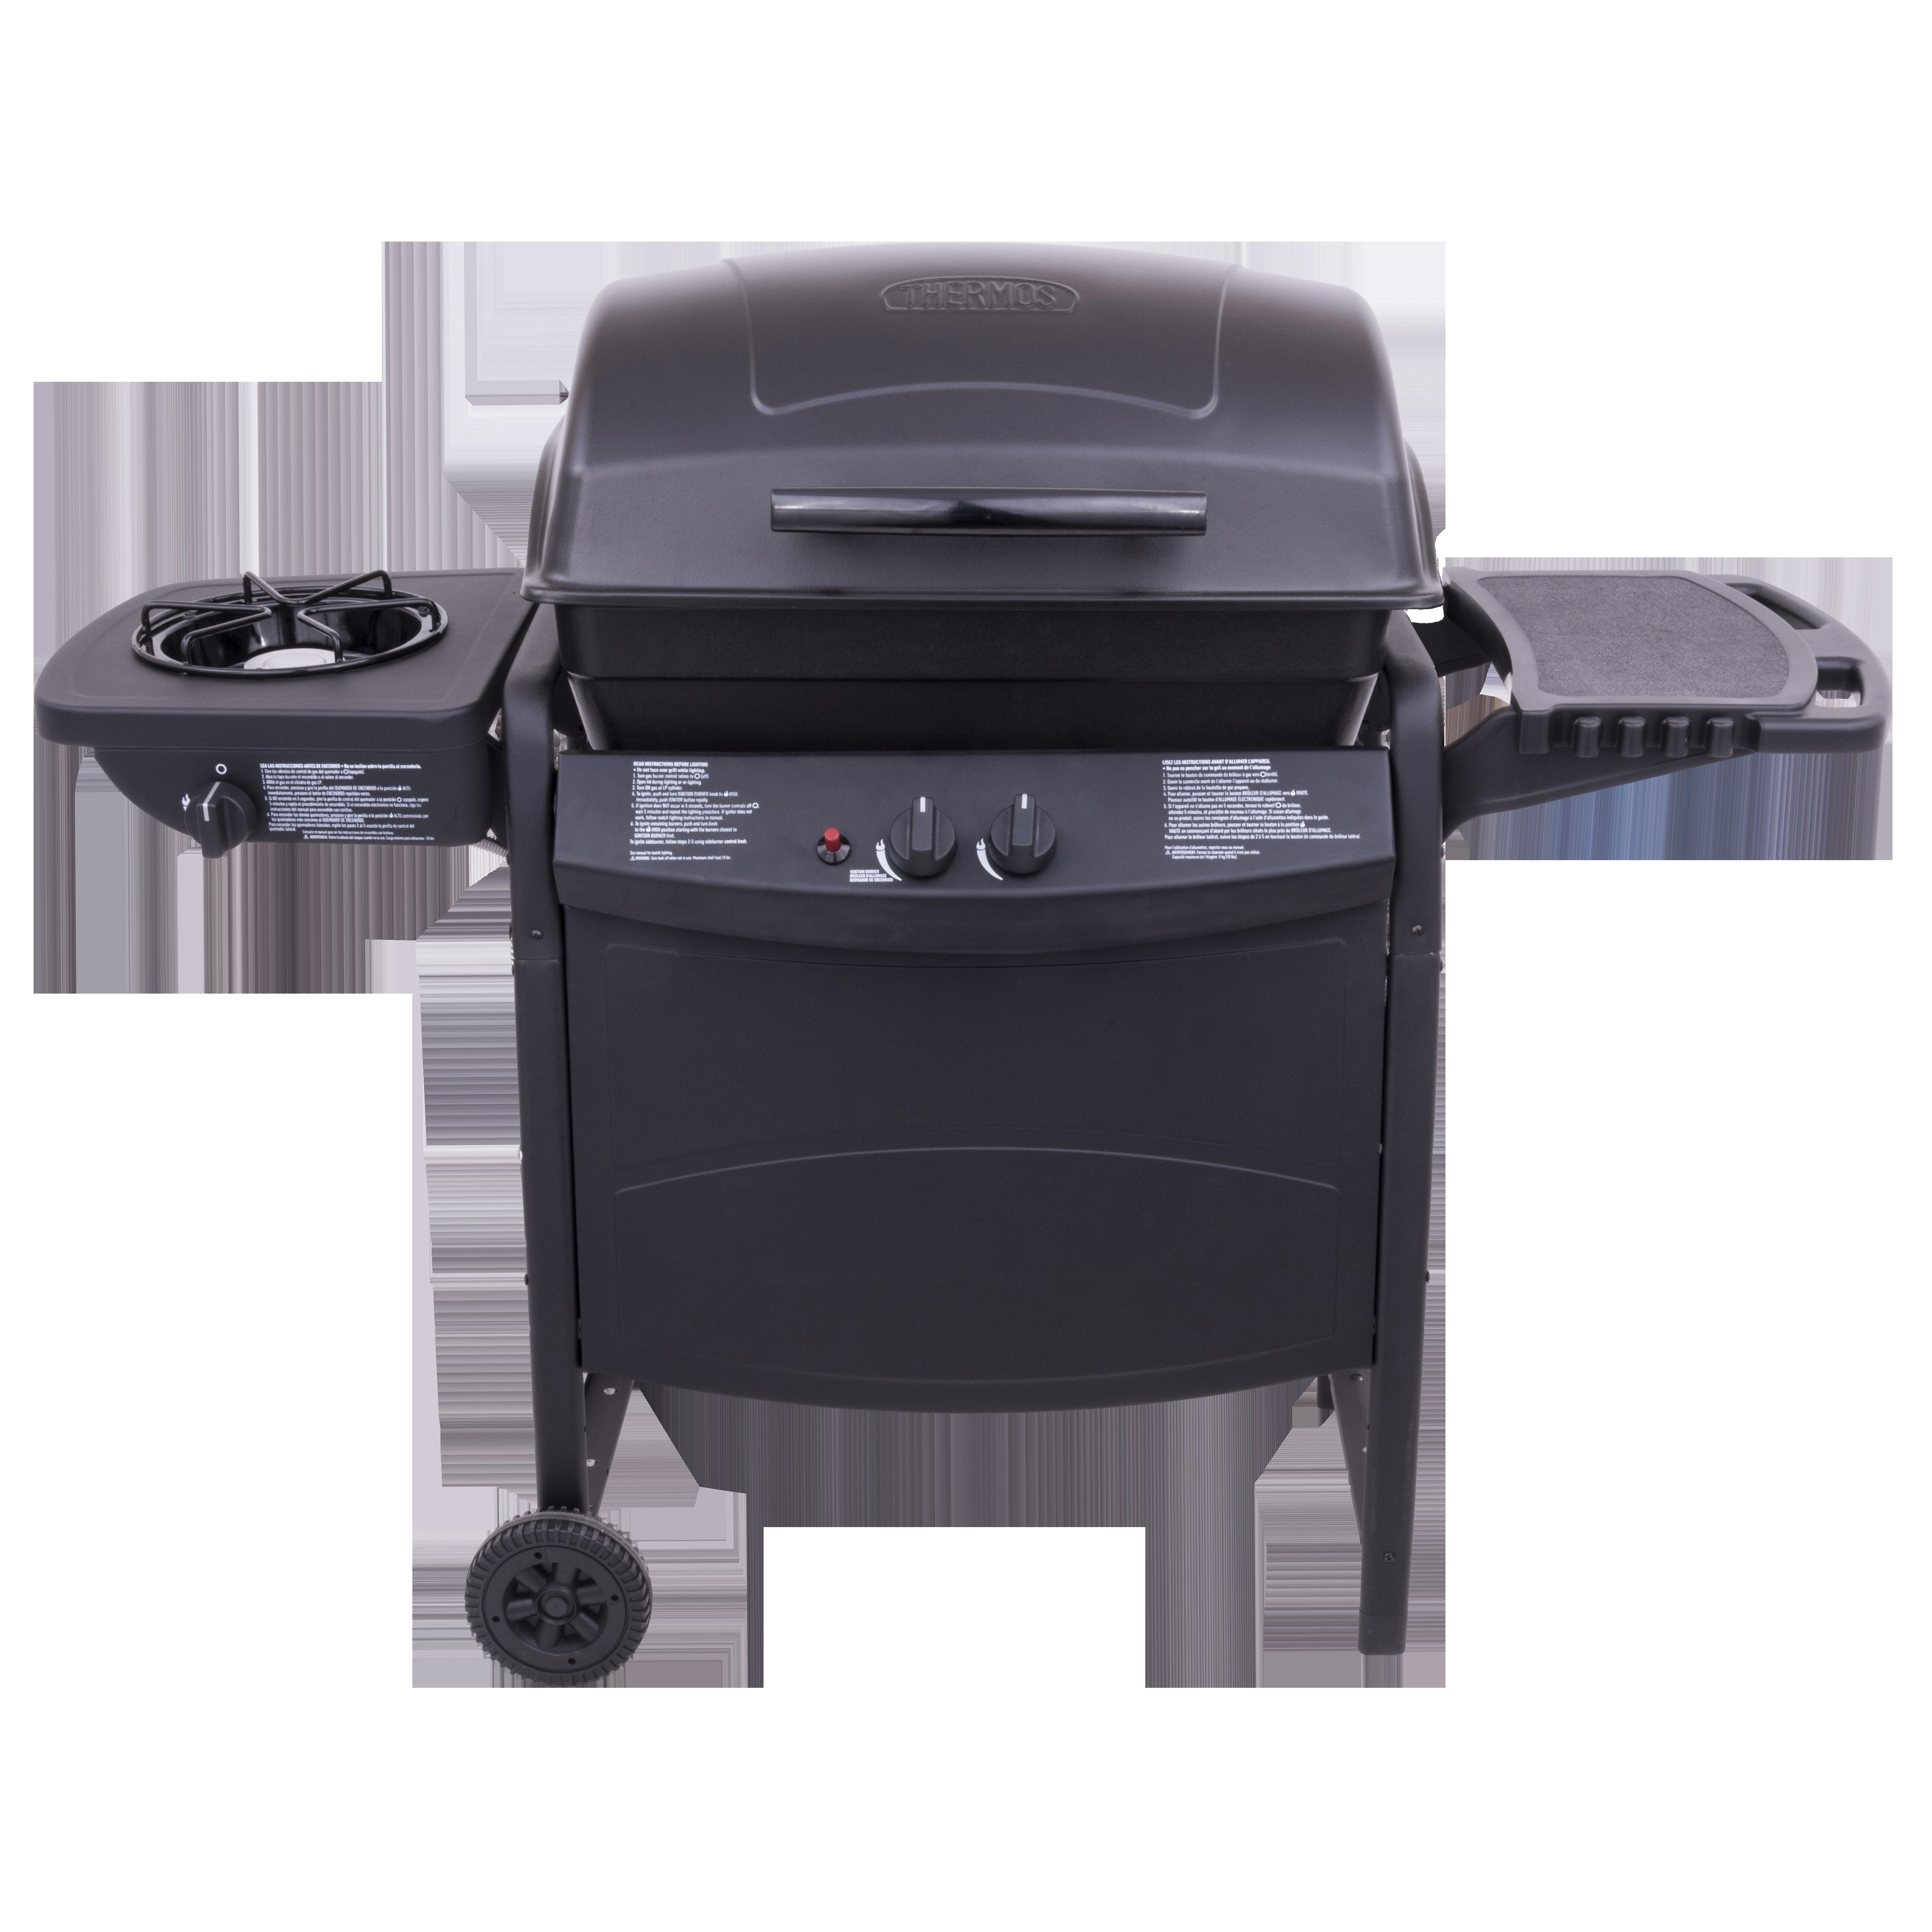 Thermos 2 Burner Propane Gas Grill Reviews Wayfair